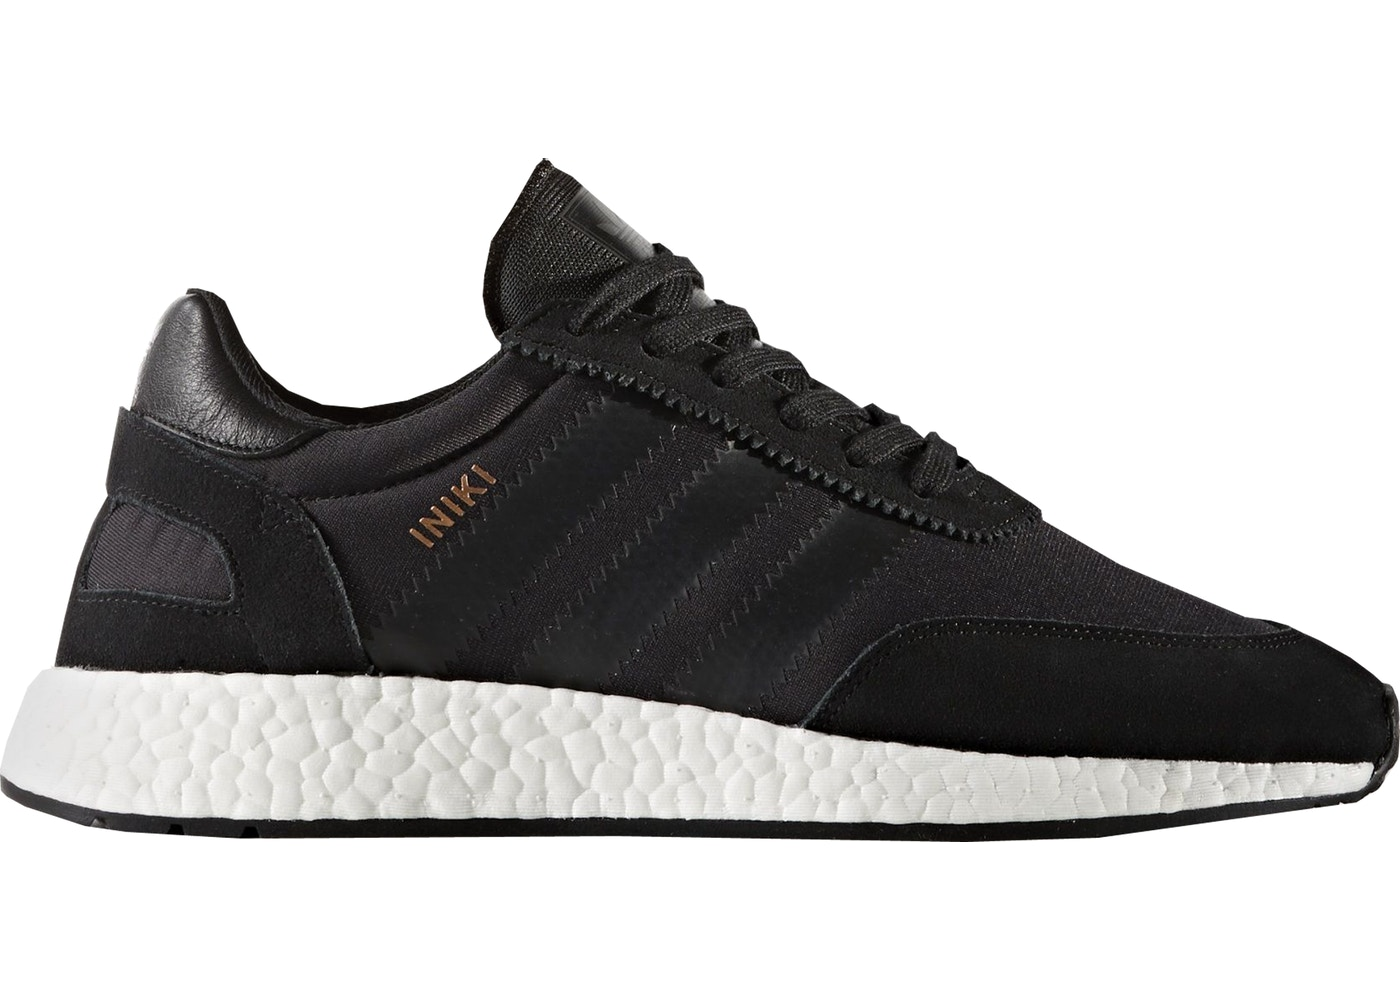 a21415ea8ca0 Sell. or Ask. Size  13. View All Bids. adidas Iniki Runner Black White